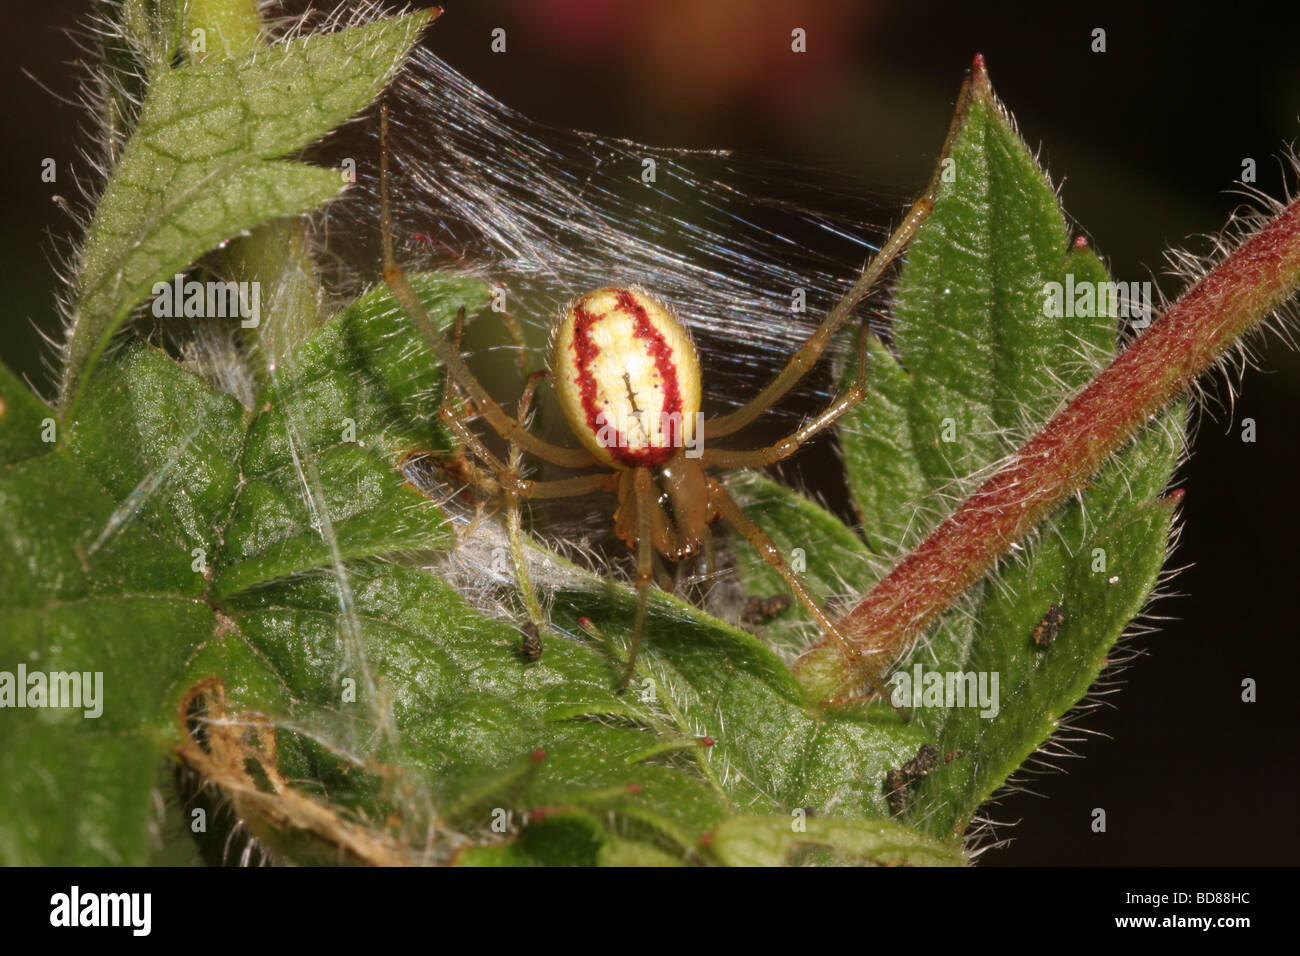 Red and white spider Enoplognatha ovata Theridiidae female in an urban garden UK - Stock Image